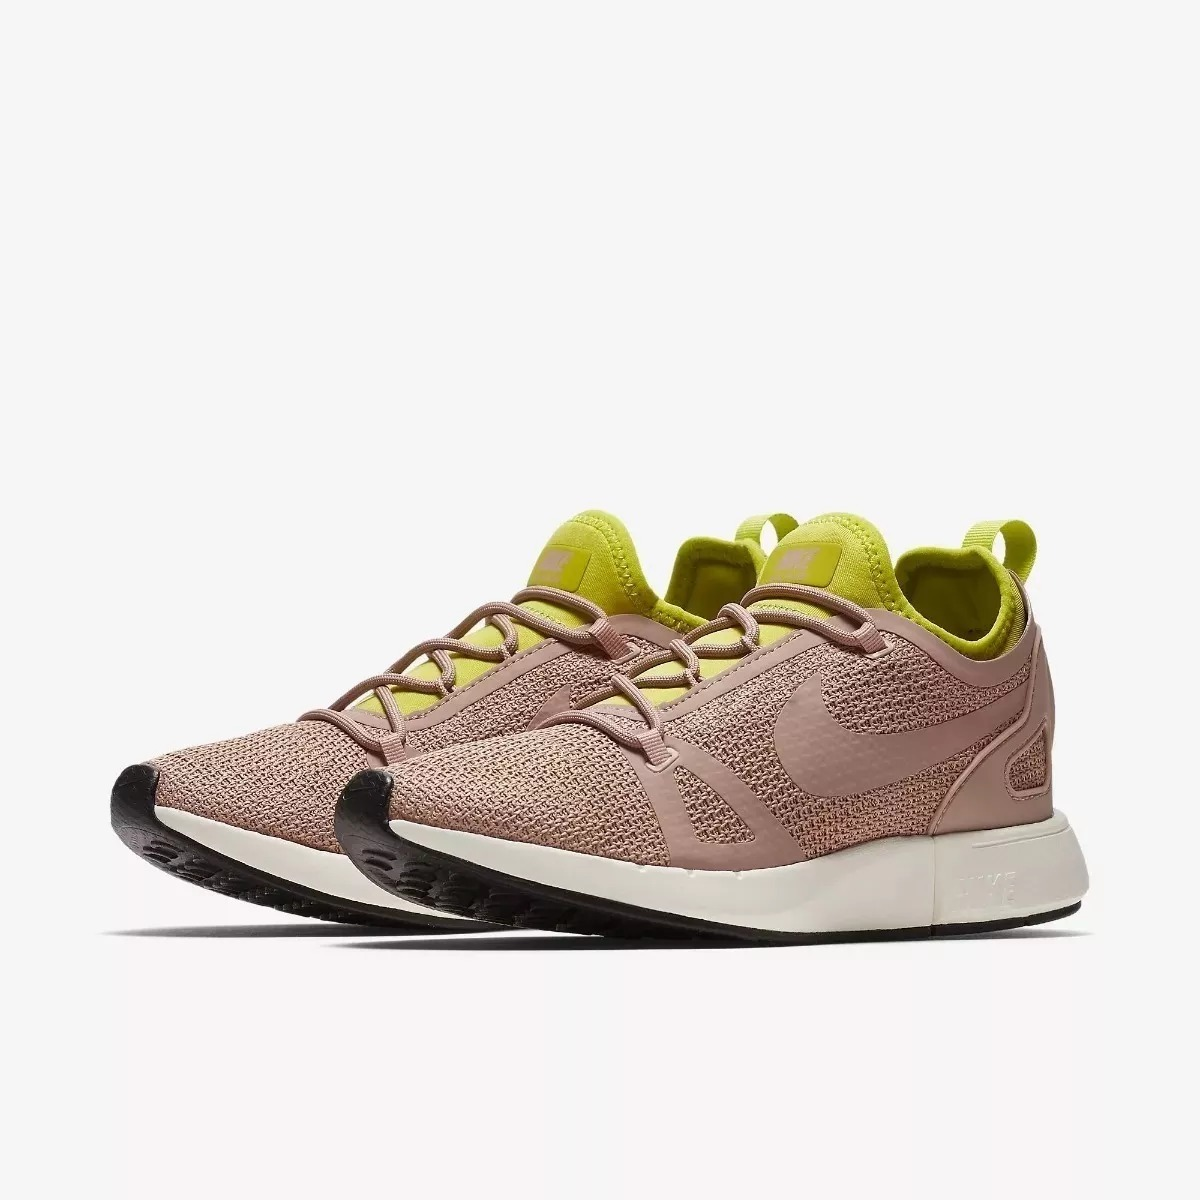 finest selection ebabc e0660 Zapatillas Nike Duel Racer Knit/927243600/mujer/running - $ 2.199,00 ...